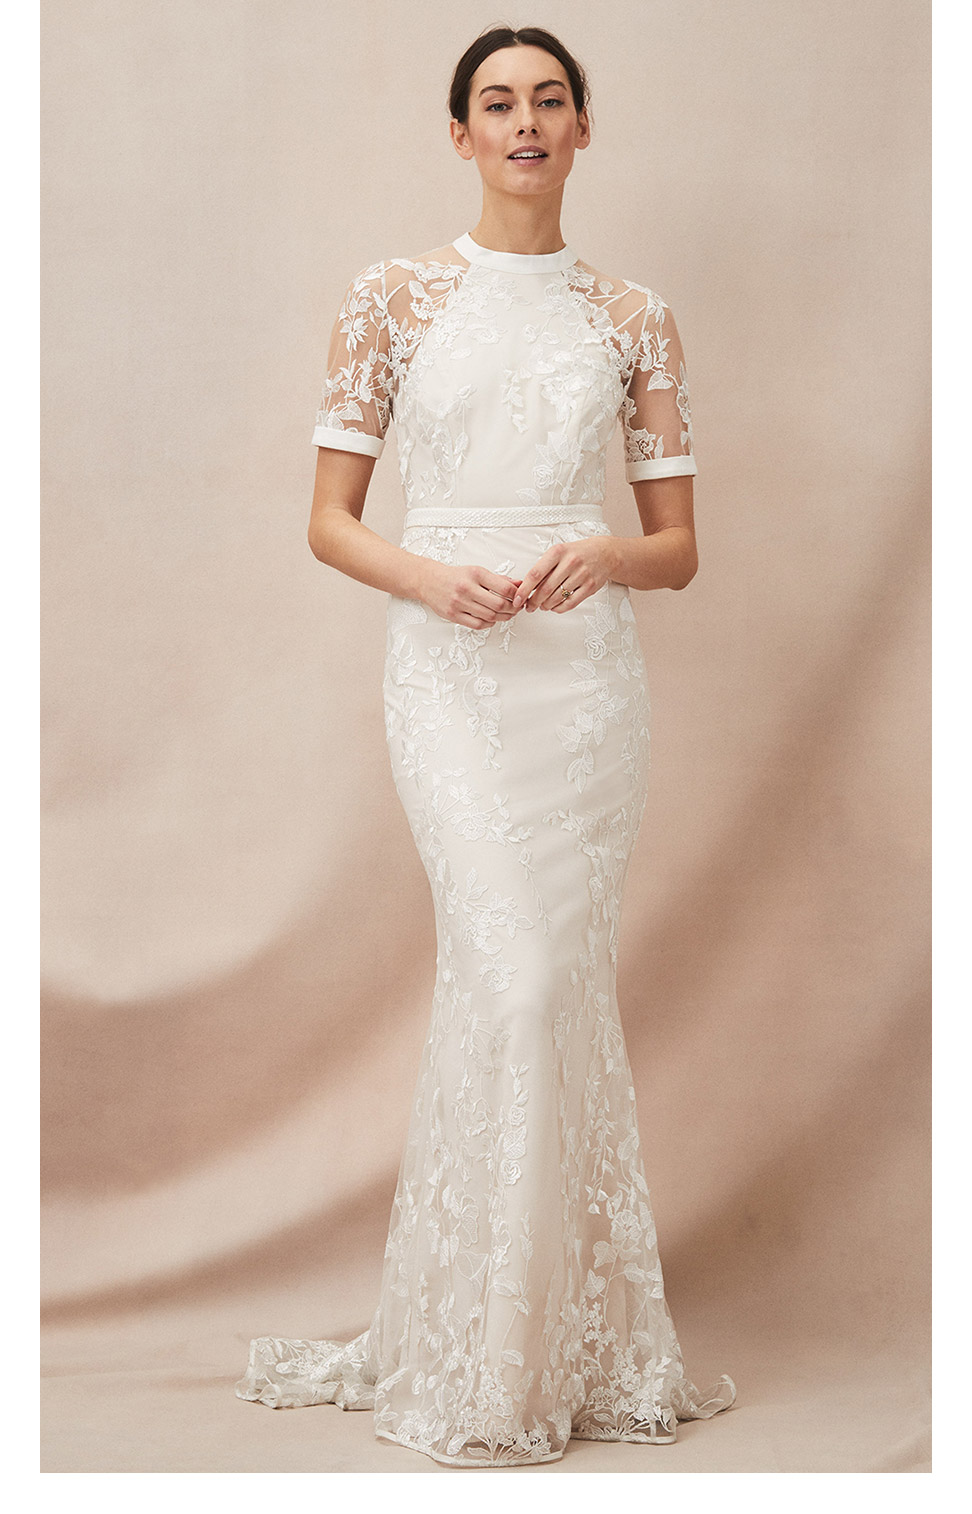 Poppy Embroidered Wedding Dress £450